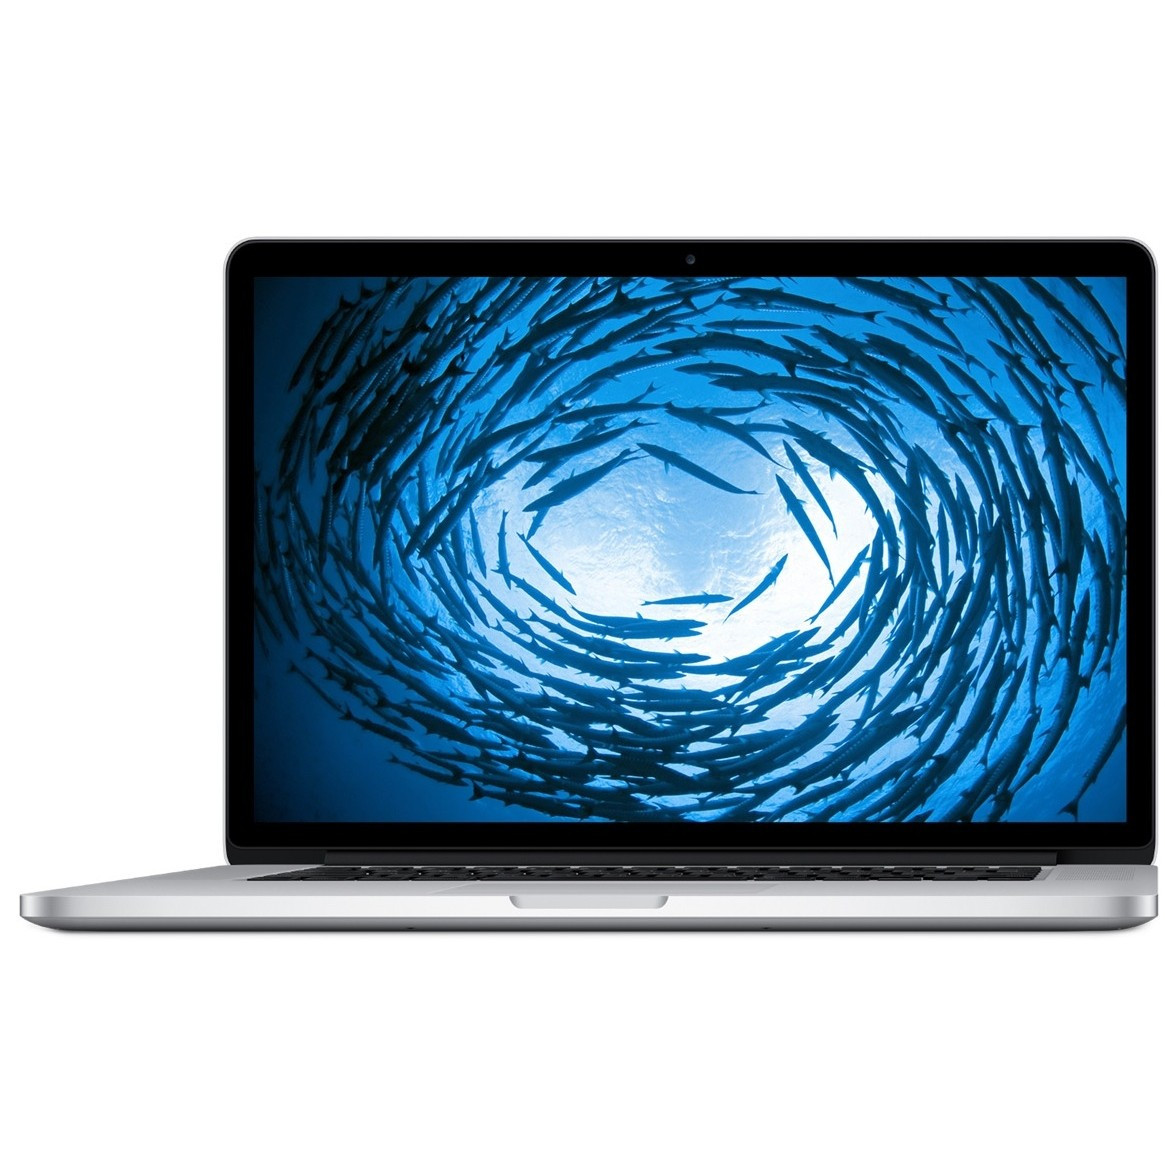 "Ноутбук Apple MacBook Pro 15"" with Retina display (MJLT2) 2015 - 10 з 10 (Б/В)"